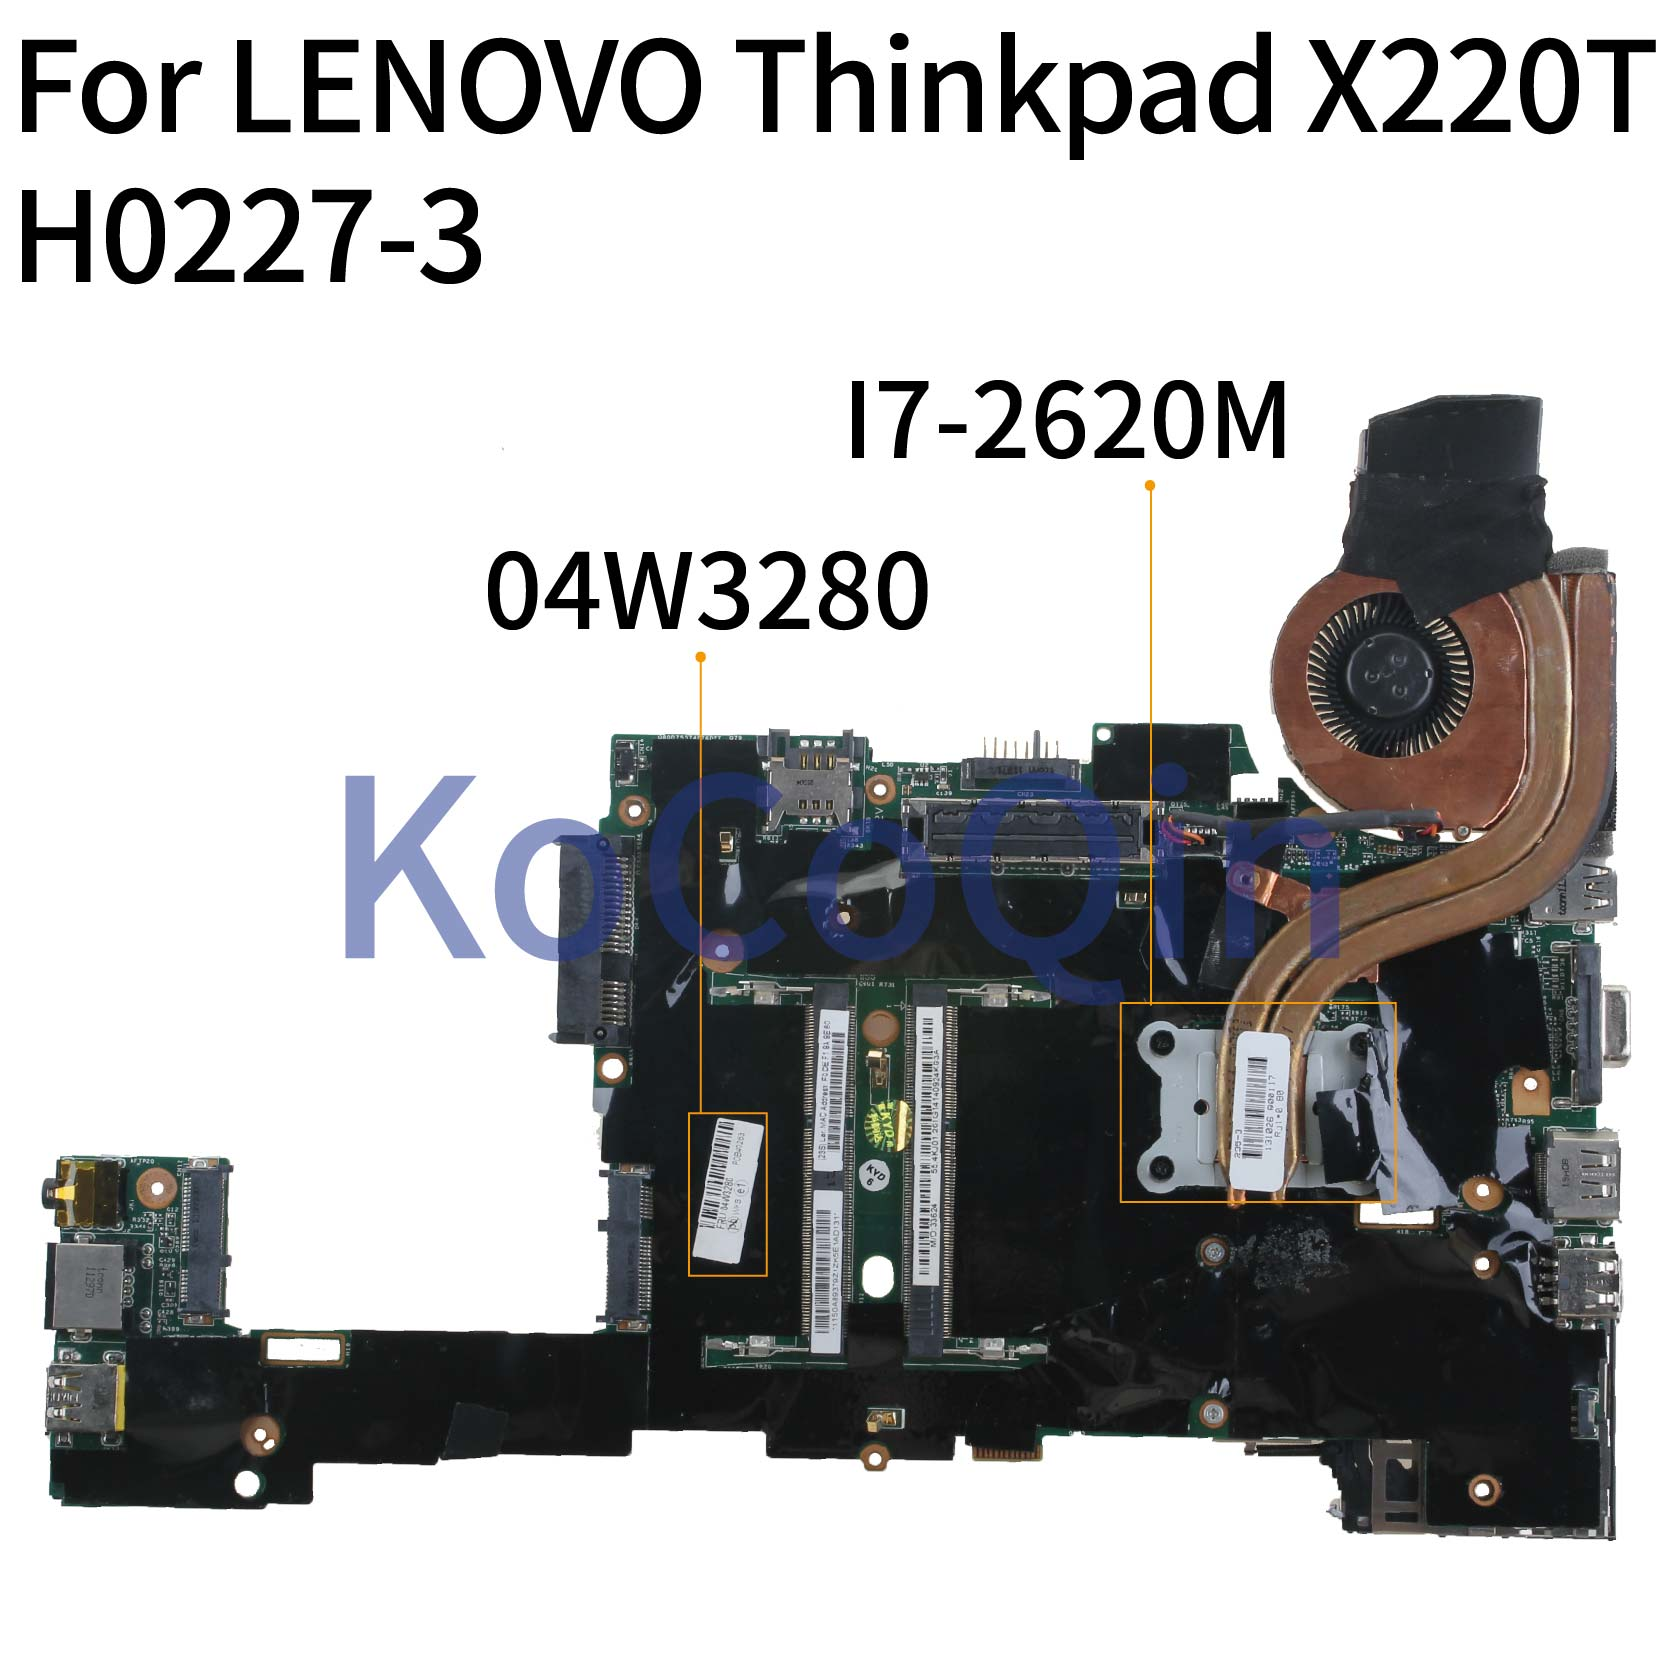 KoCoQin Laptop motherboard For LENOVO Thinkpad X220T X220I-TABLET <font><b>I7</b></font>-<font><b>2620M</b></font> QM67 Mainboard 04W2128 04W0664 04W3280 H0227-3 image